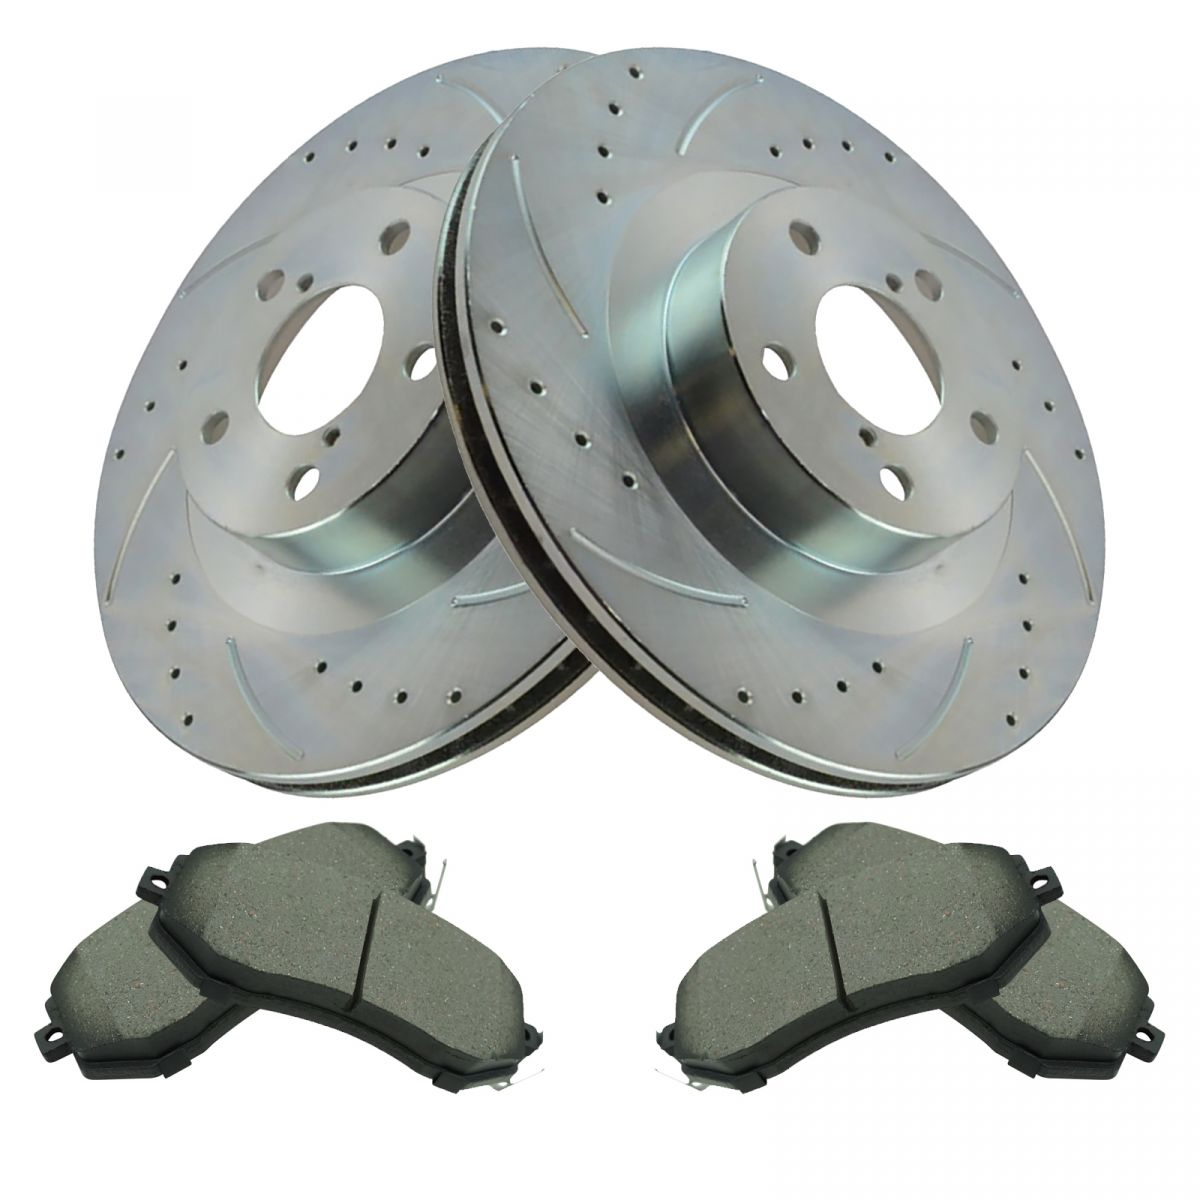 Front+Rear Kit 5lug 4 OEM Replacement Disc Brake Rotors 8 Ceramic Pads Fits:- Camry High-End